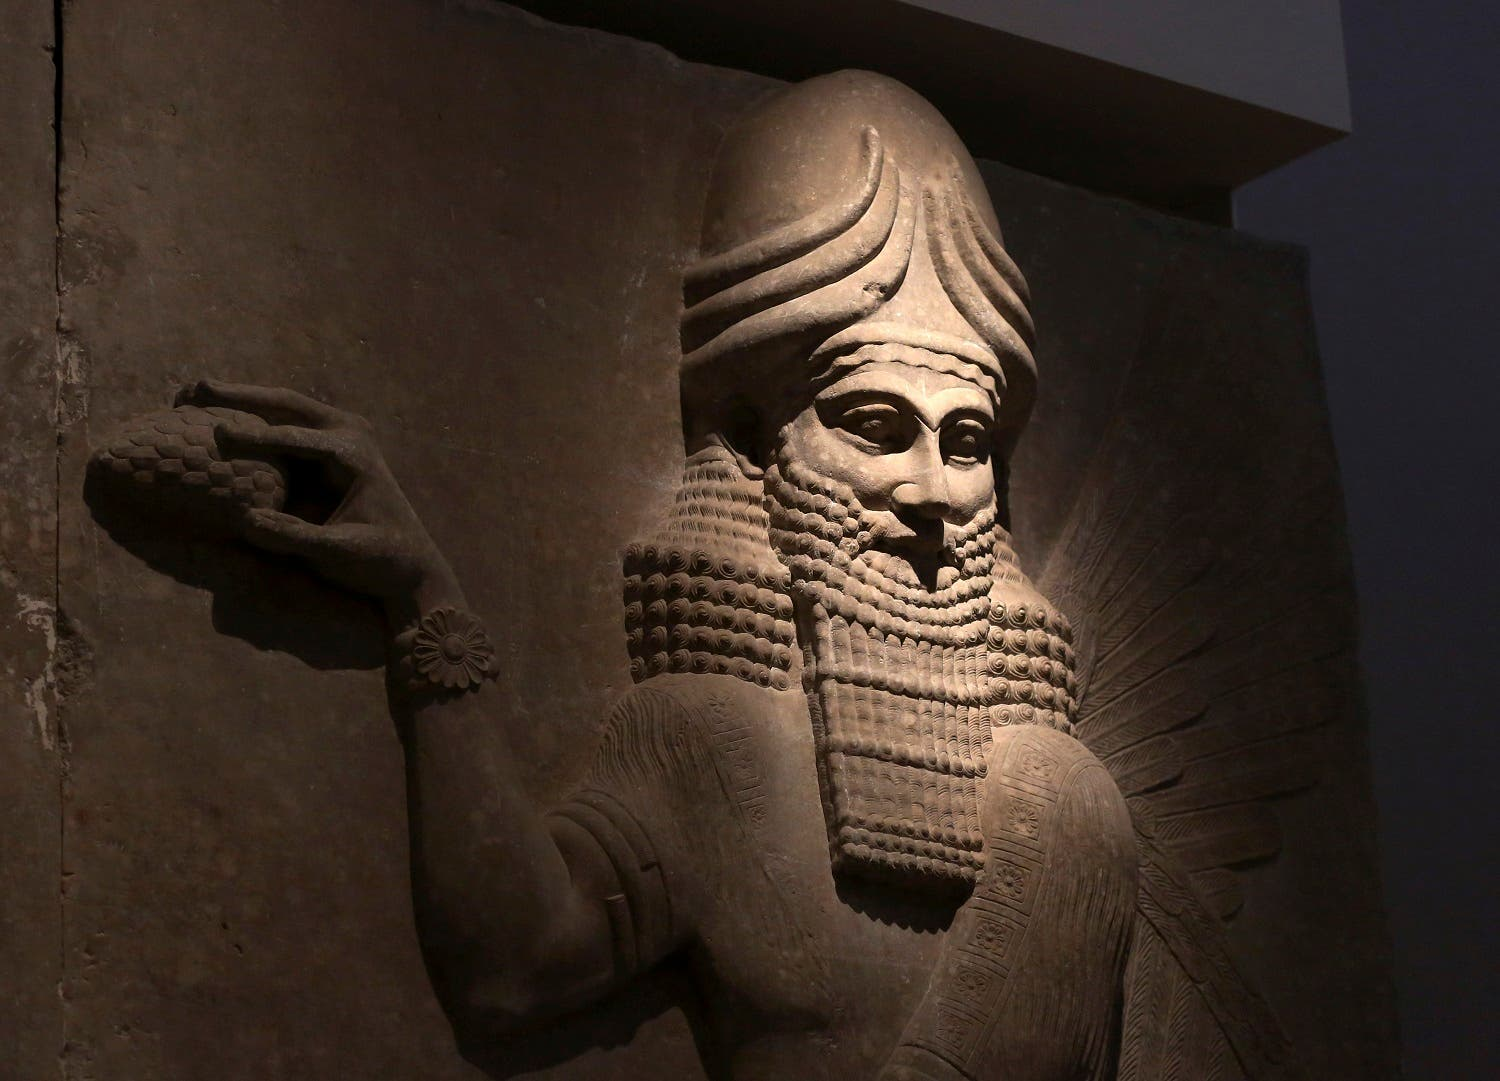 n this Wednesday, July 29, 2015 file photo, an Assyrian artifact is displayed at the Iraqi National Museum in Baghdad, Iraq. (AP)